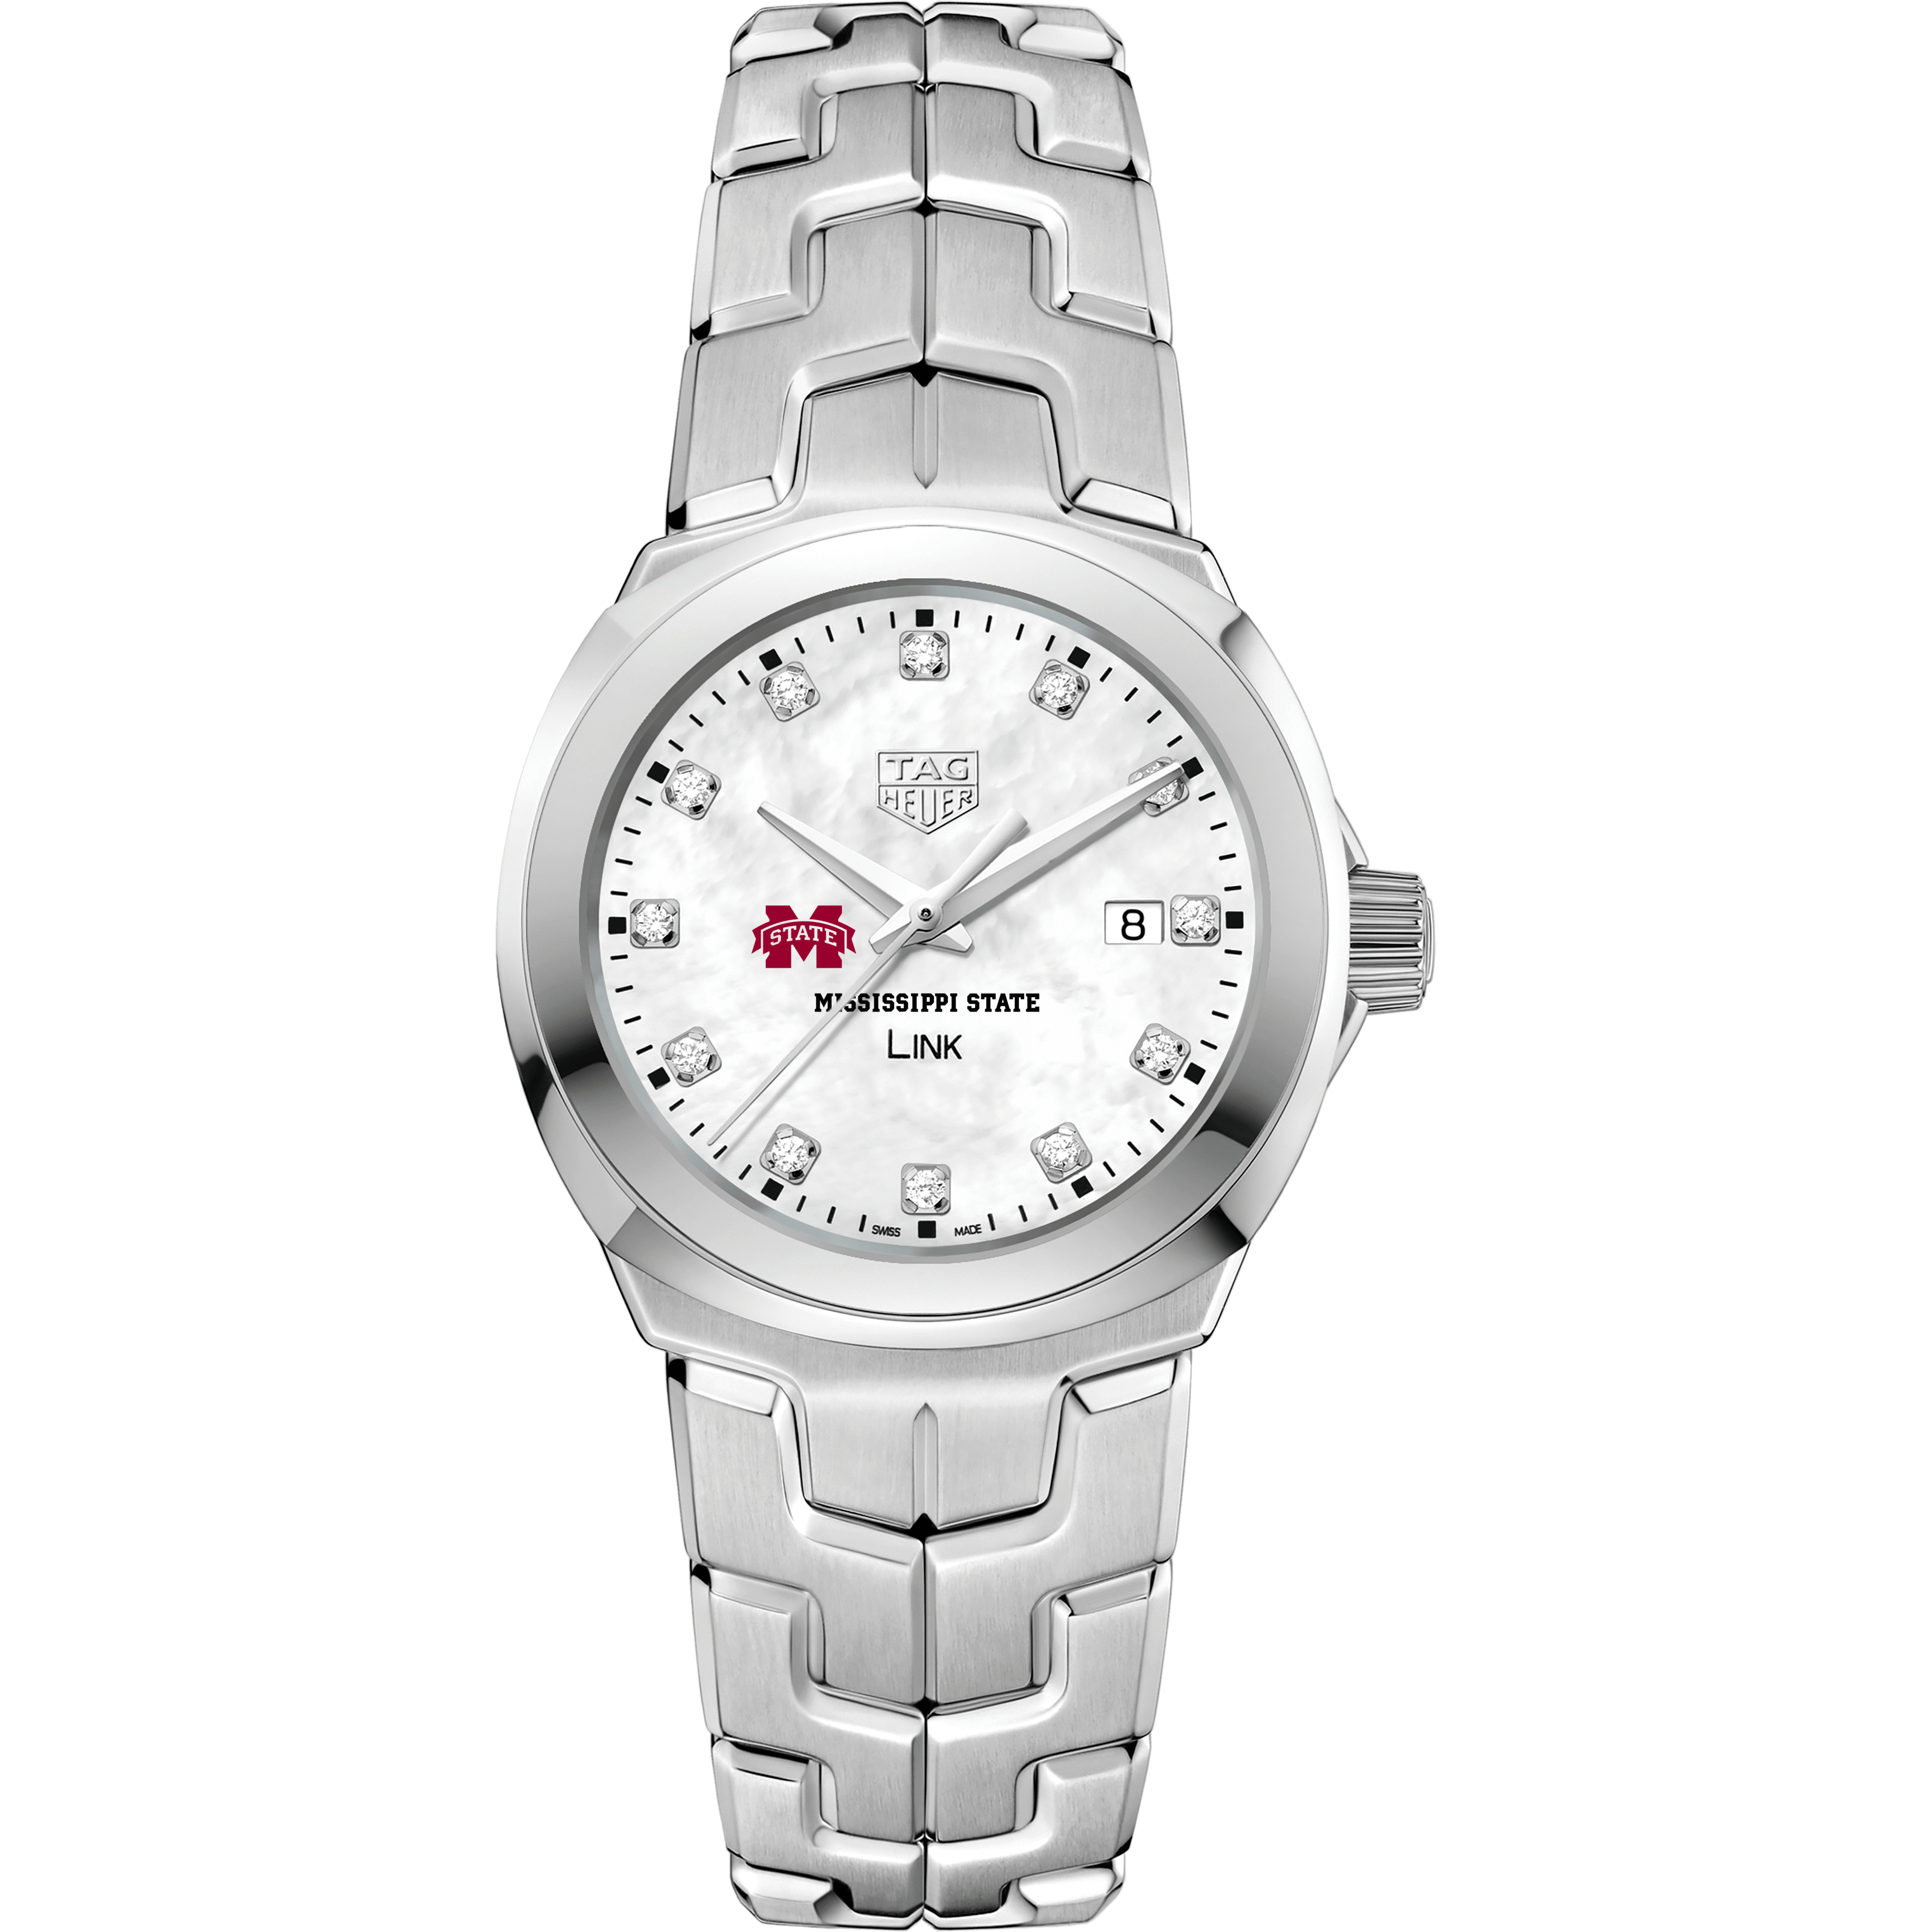 Mississippi State TAG Heuer Diamond Dial LINK for Women - Image 2